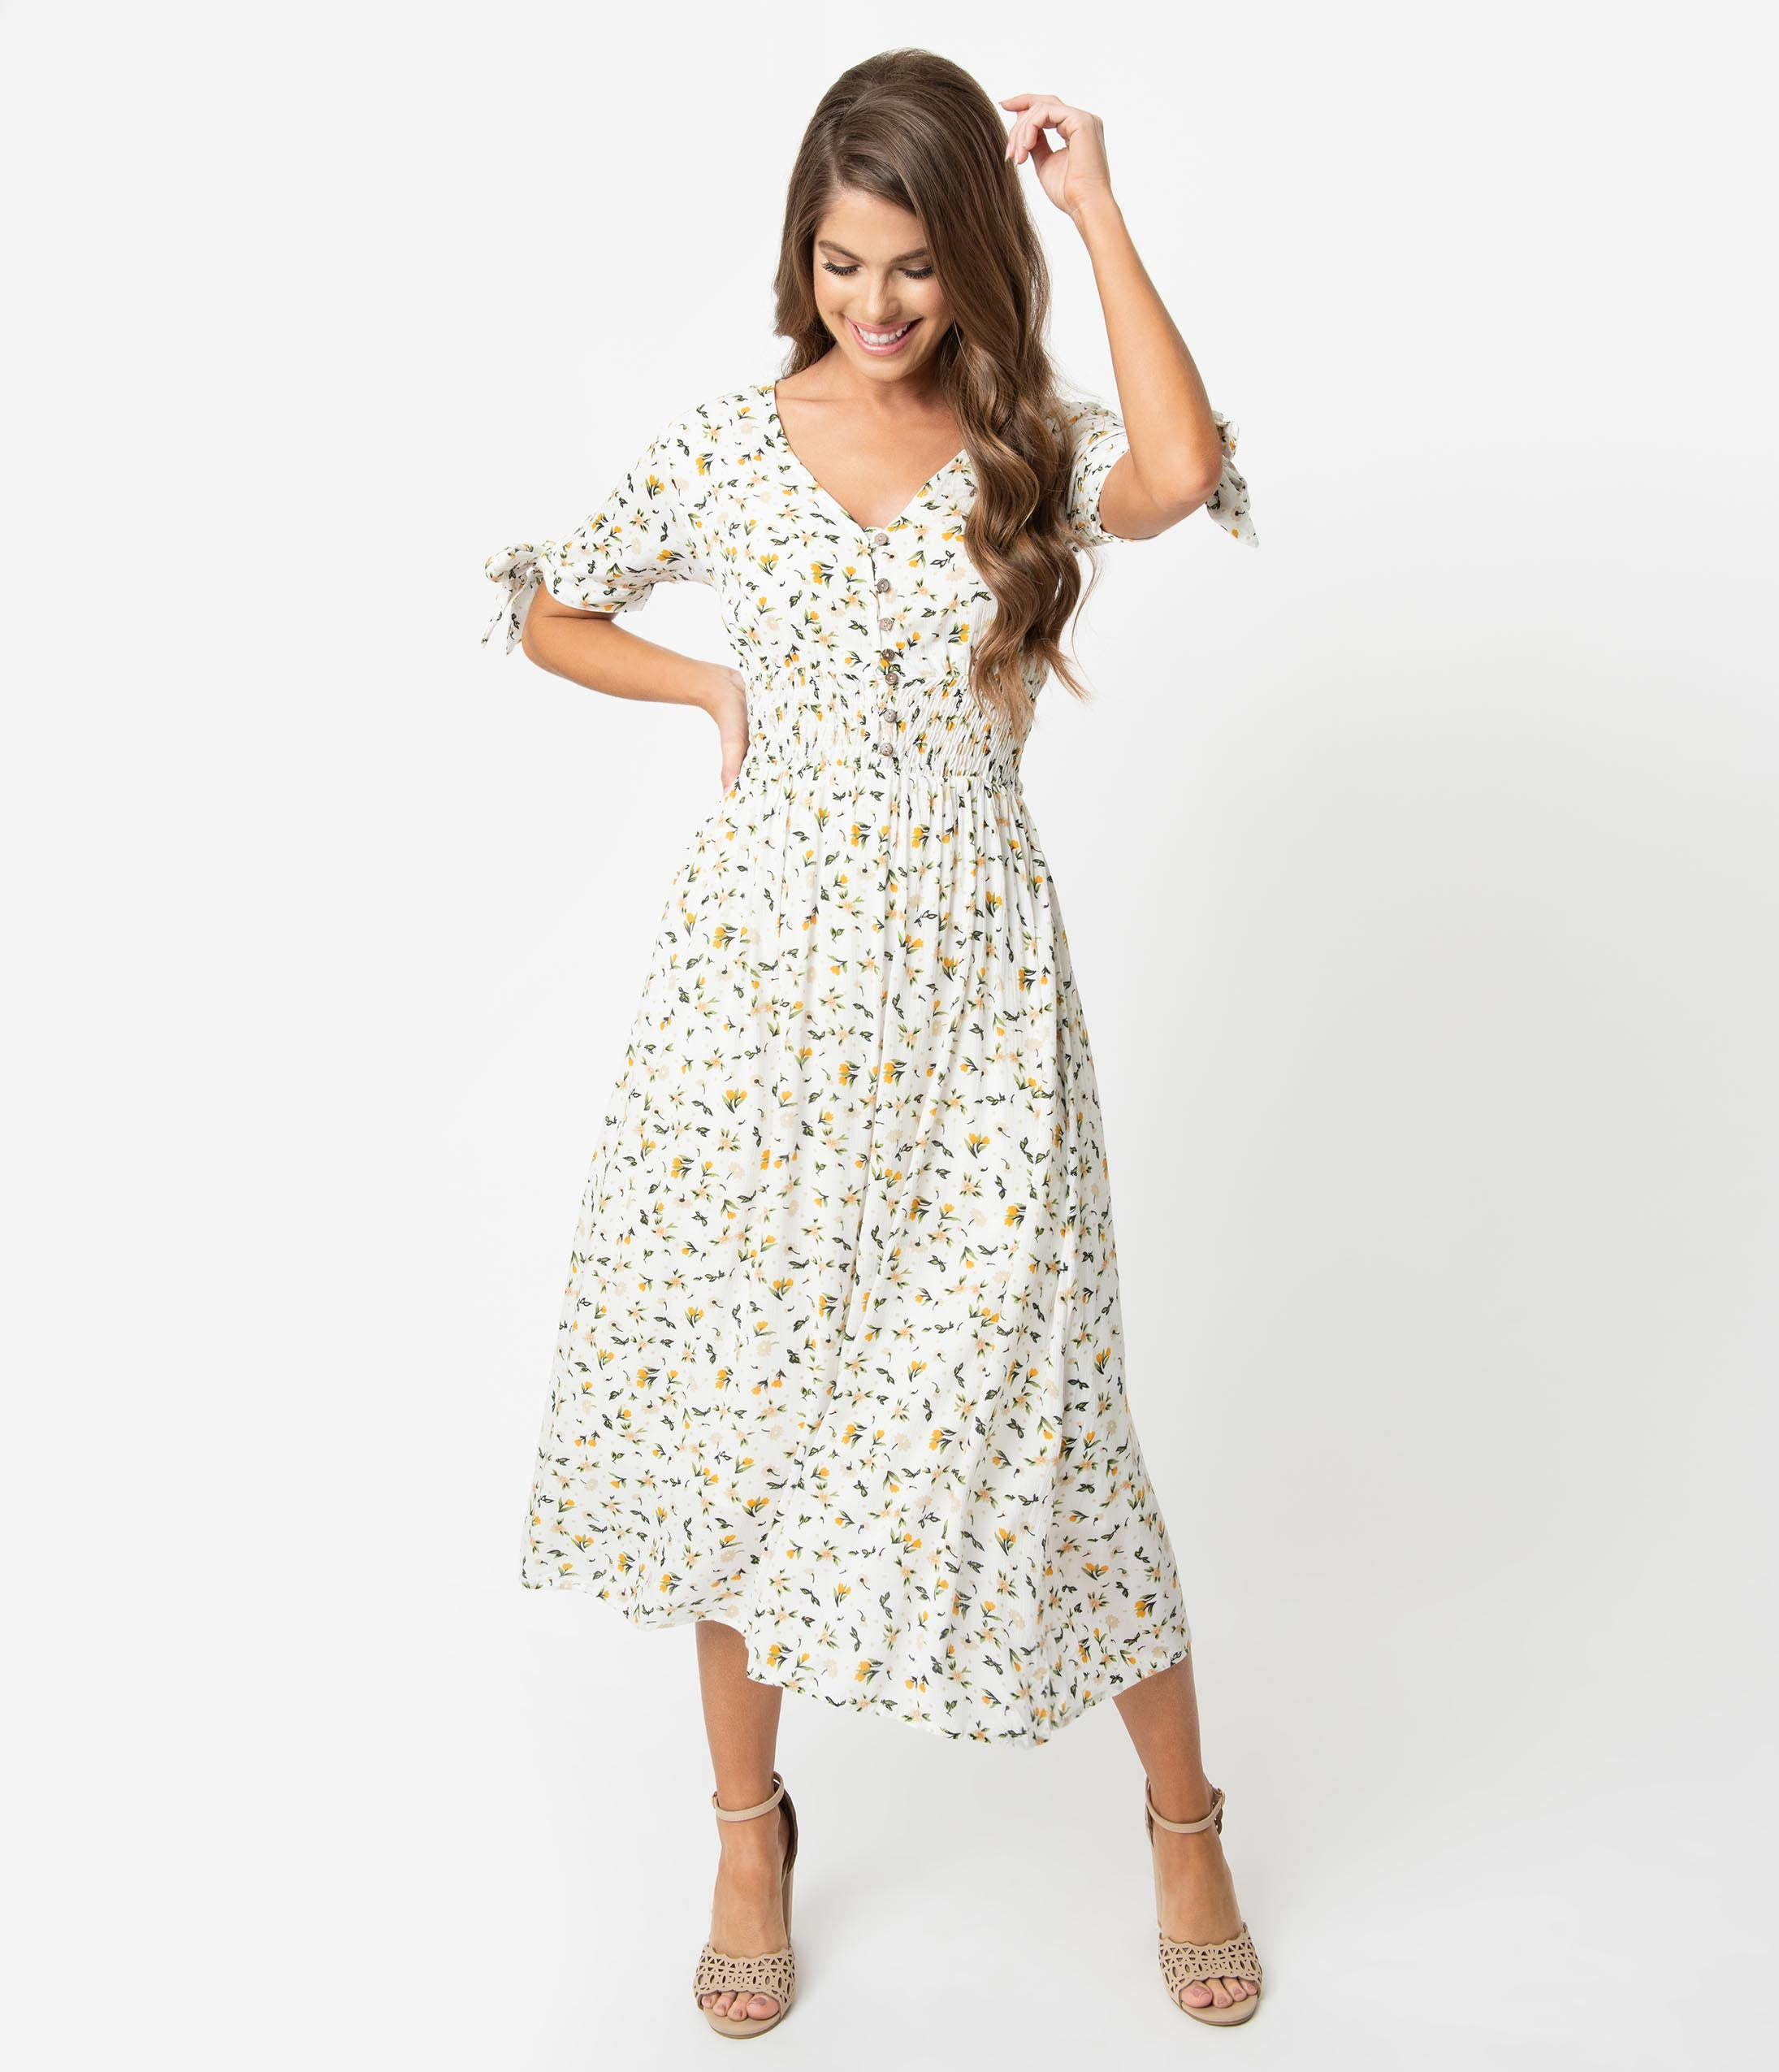 0f61da0342 1970s Style Ivory & Yellow Delicate Floral Print Short Sleeve Midi Dress